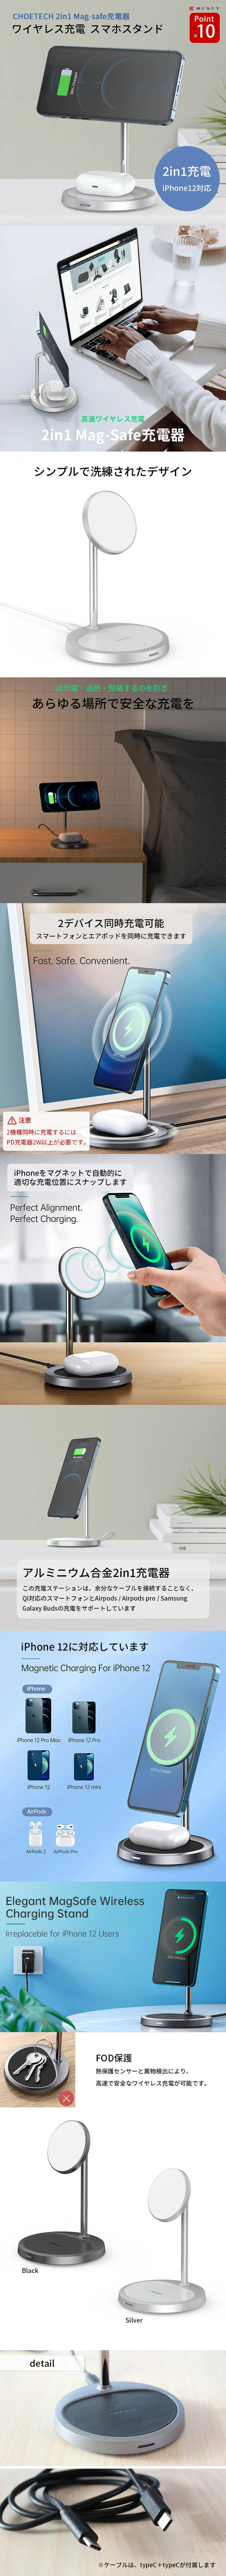 2in1 MagSafe対応スマホスタンド&充電器 MCH-A010